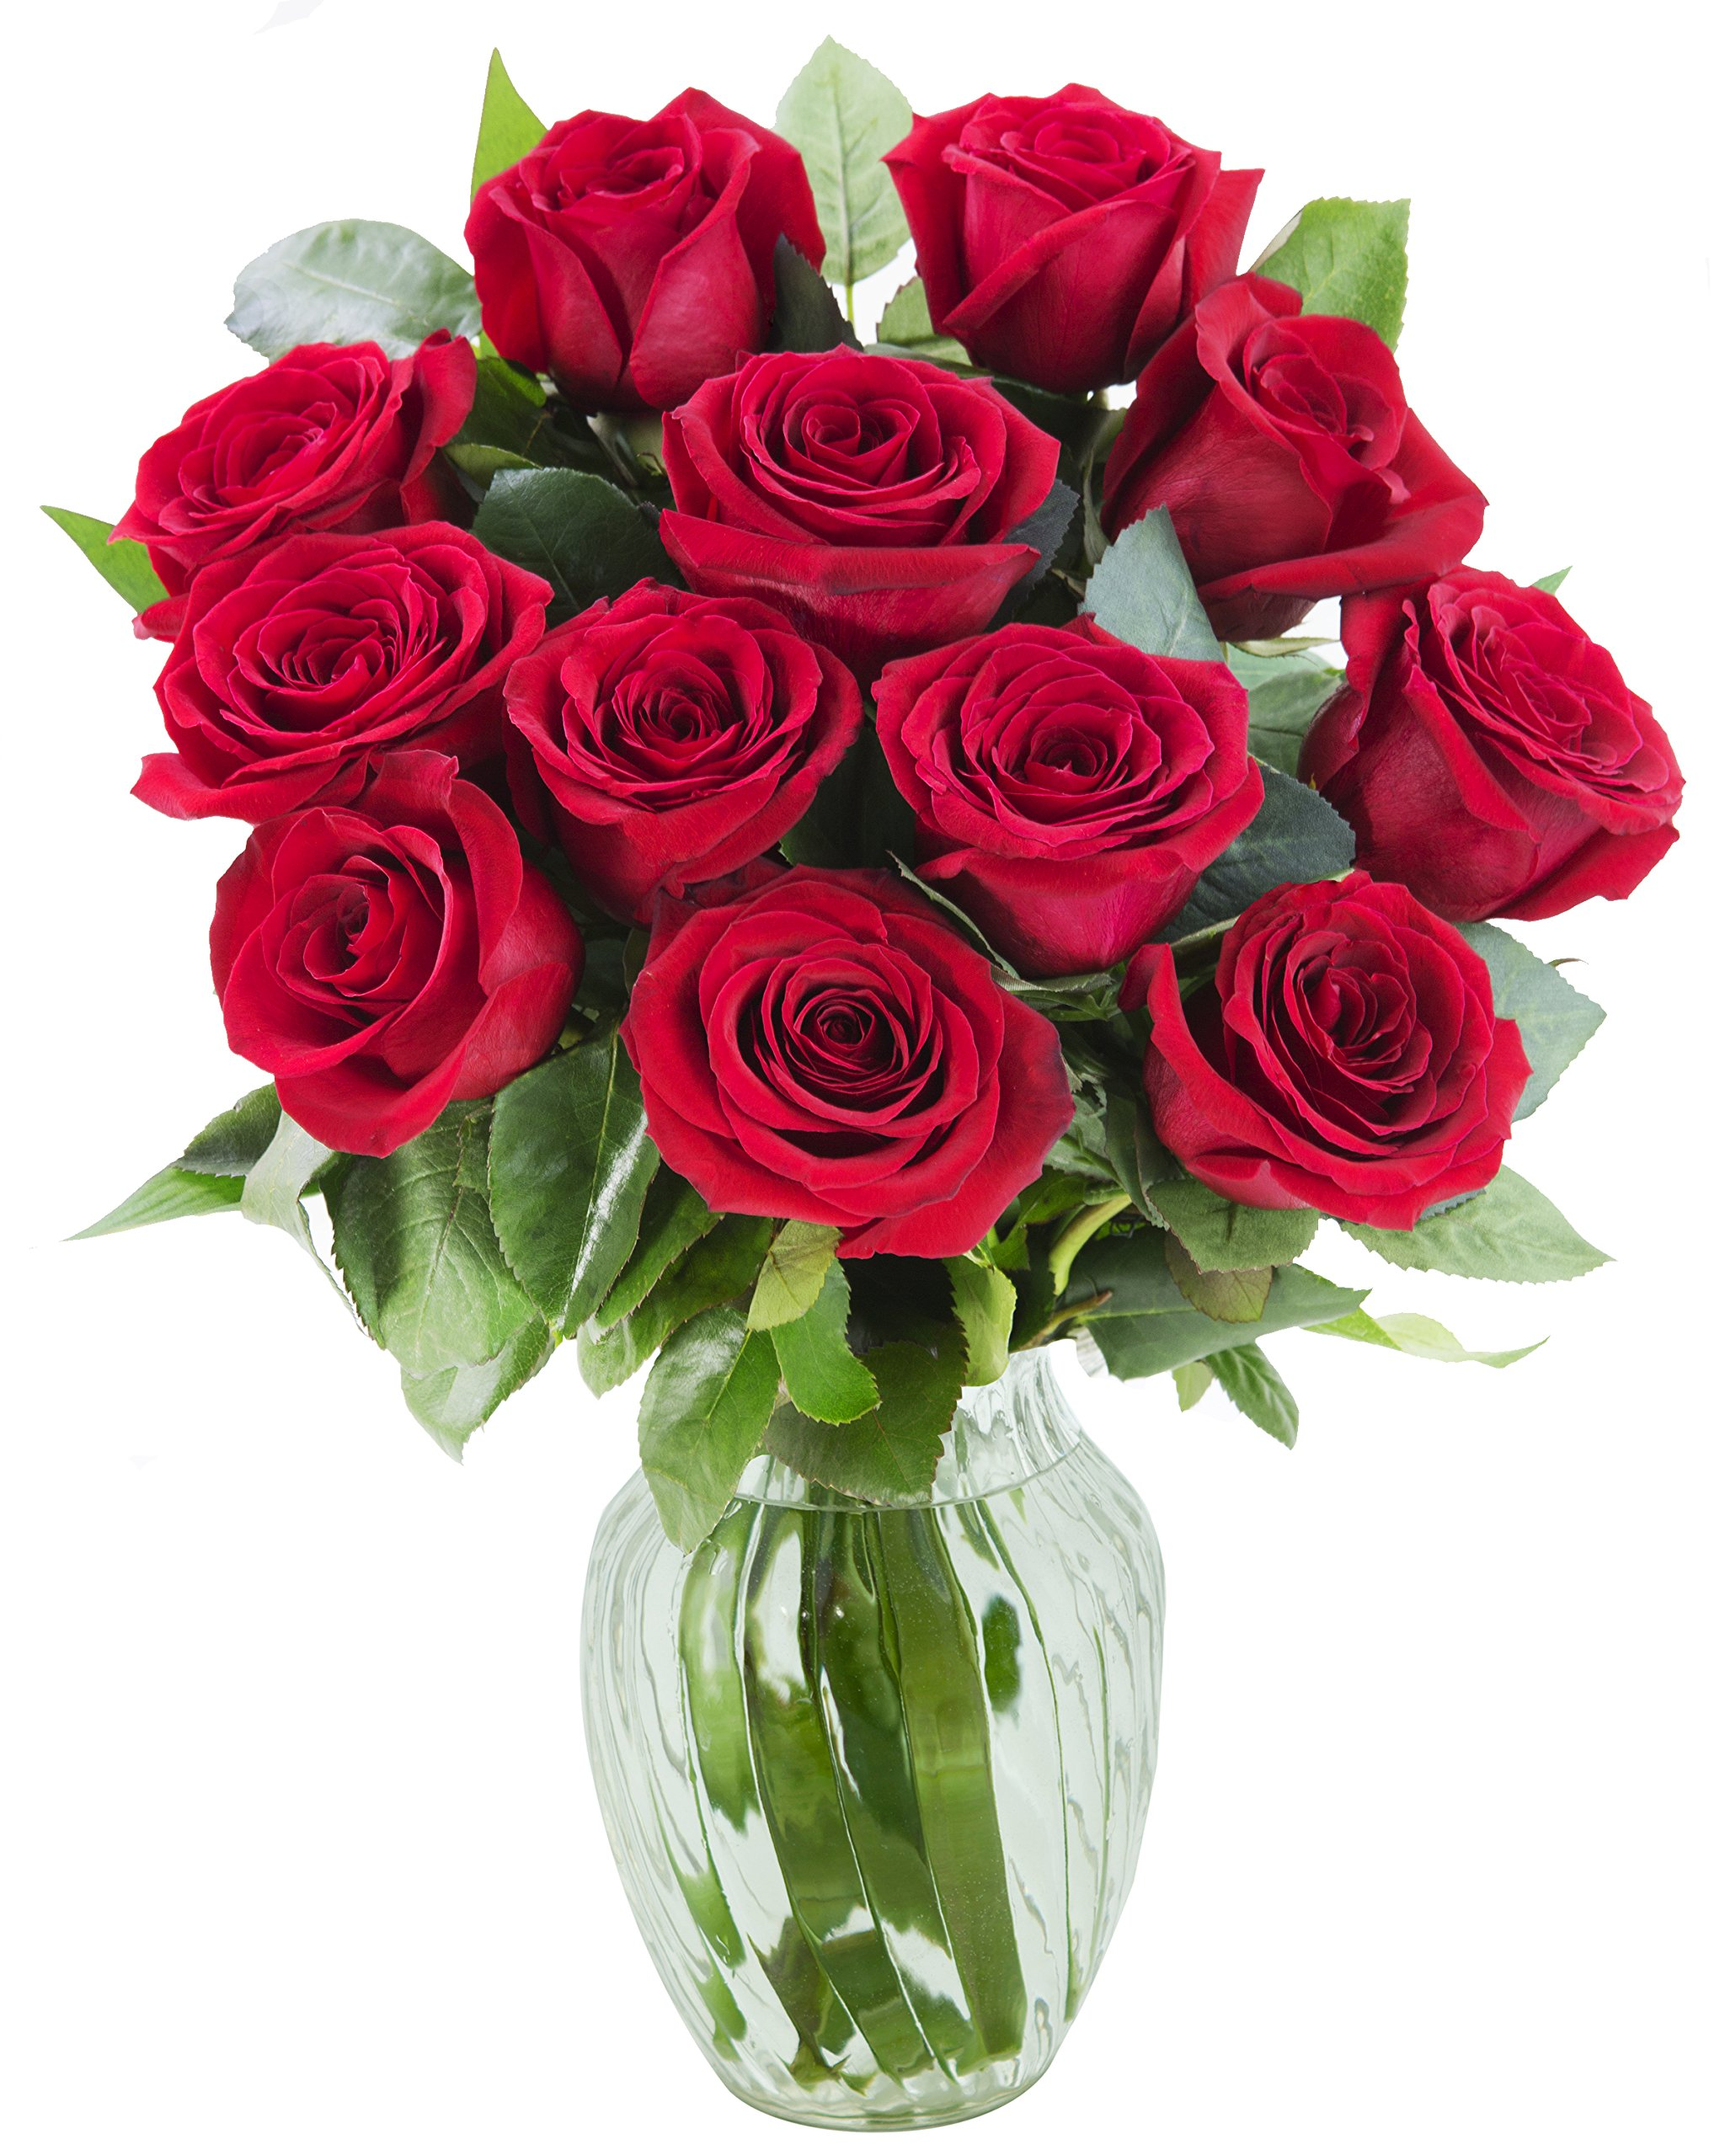 KaBloom The Romantic Classic Bouquet of 12 Fresh Red Roses (Farm-Fresh, Long-Stem) with Vase by KaBloom